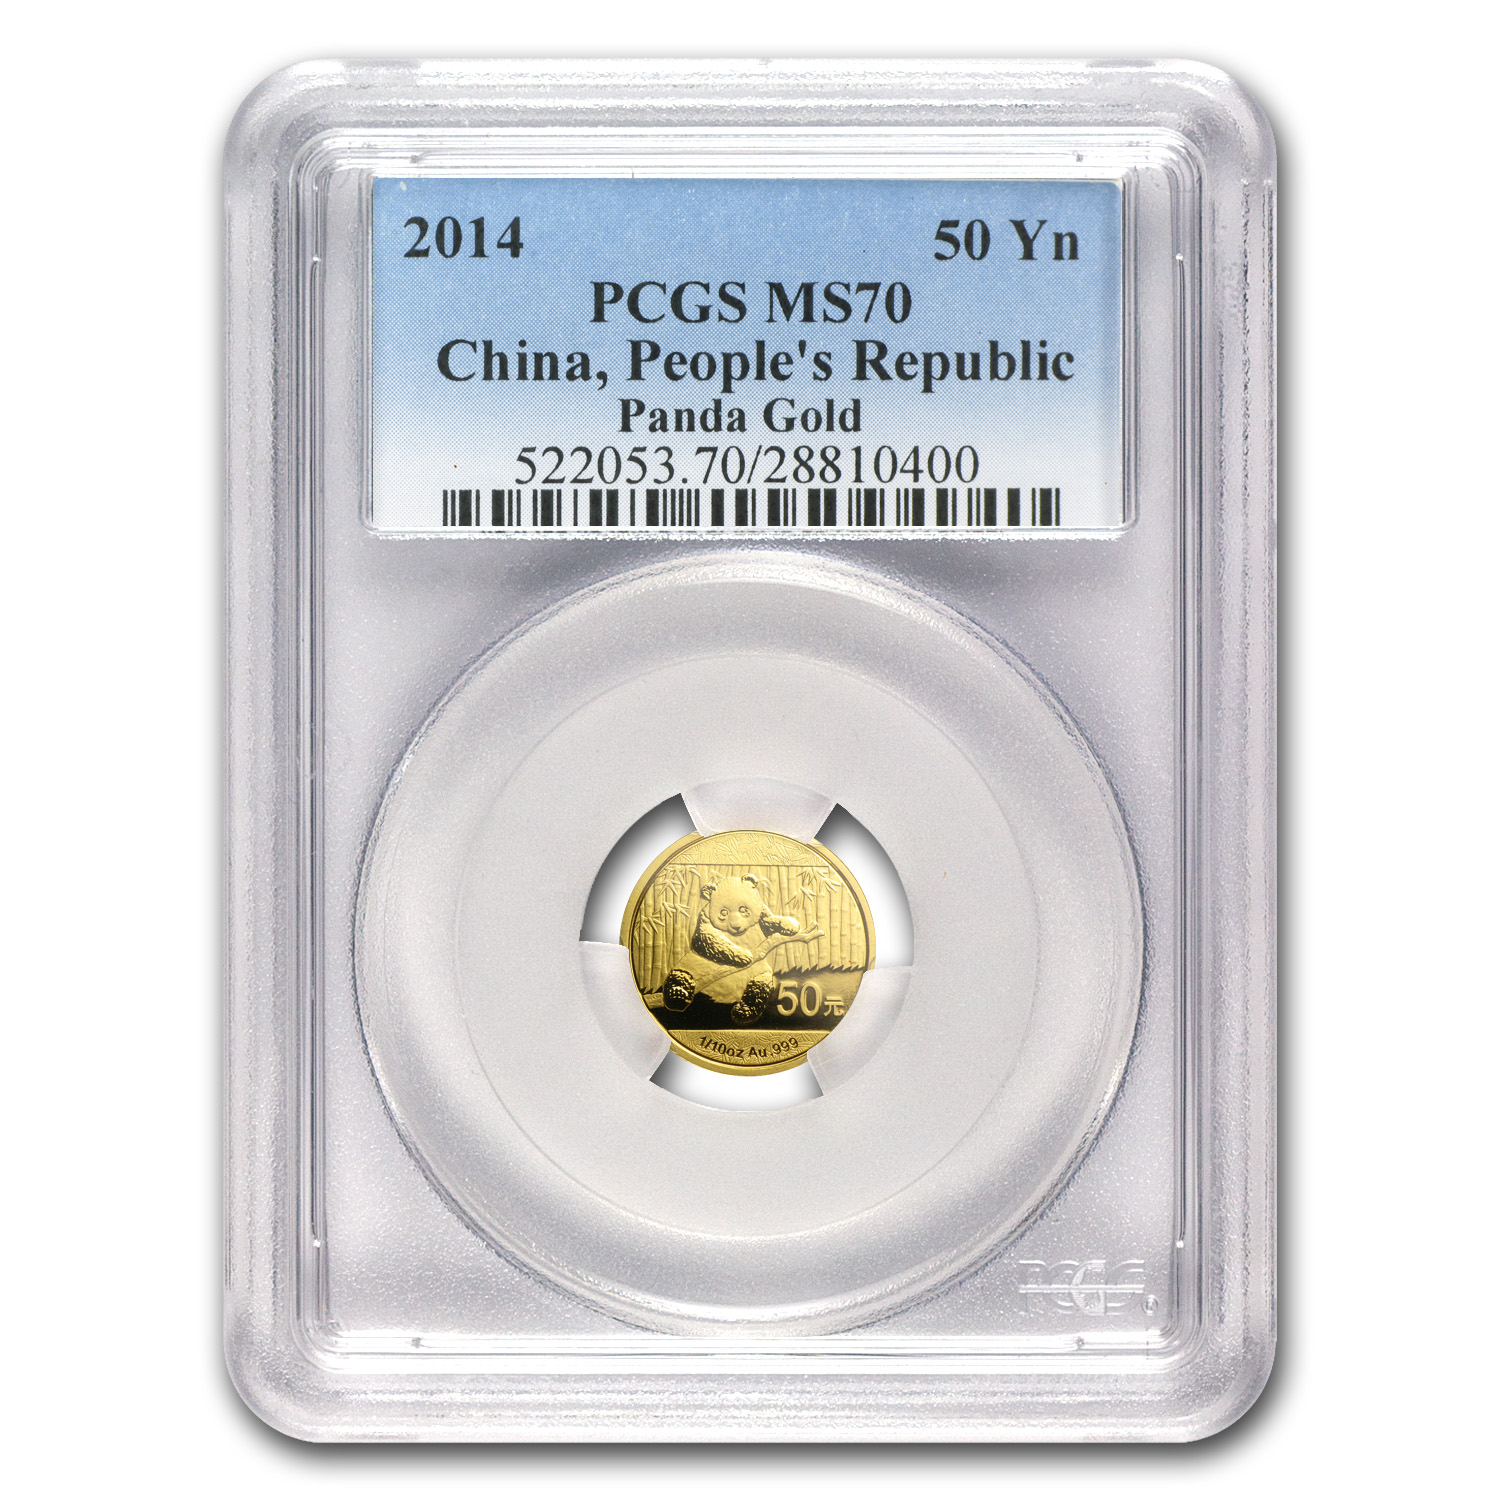 2014 1/10 oz Gold Chinese Panda MS-70 PCGS